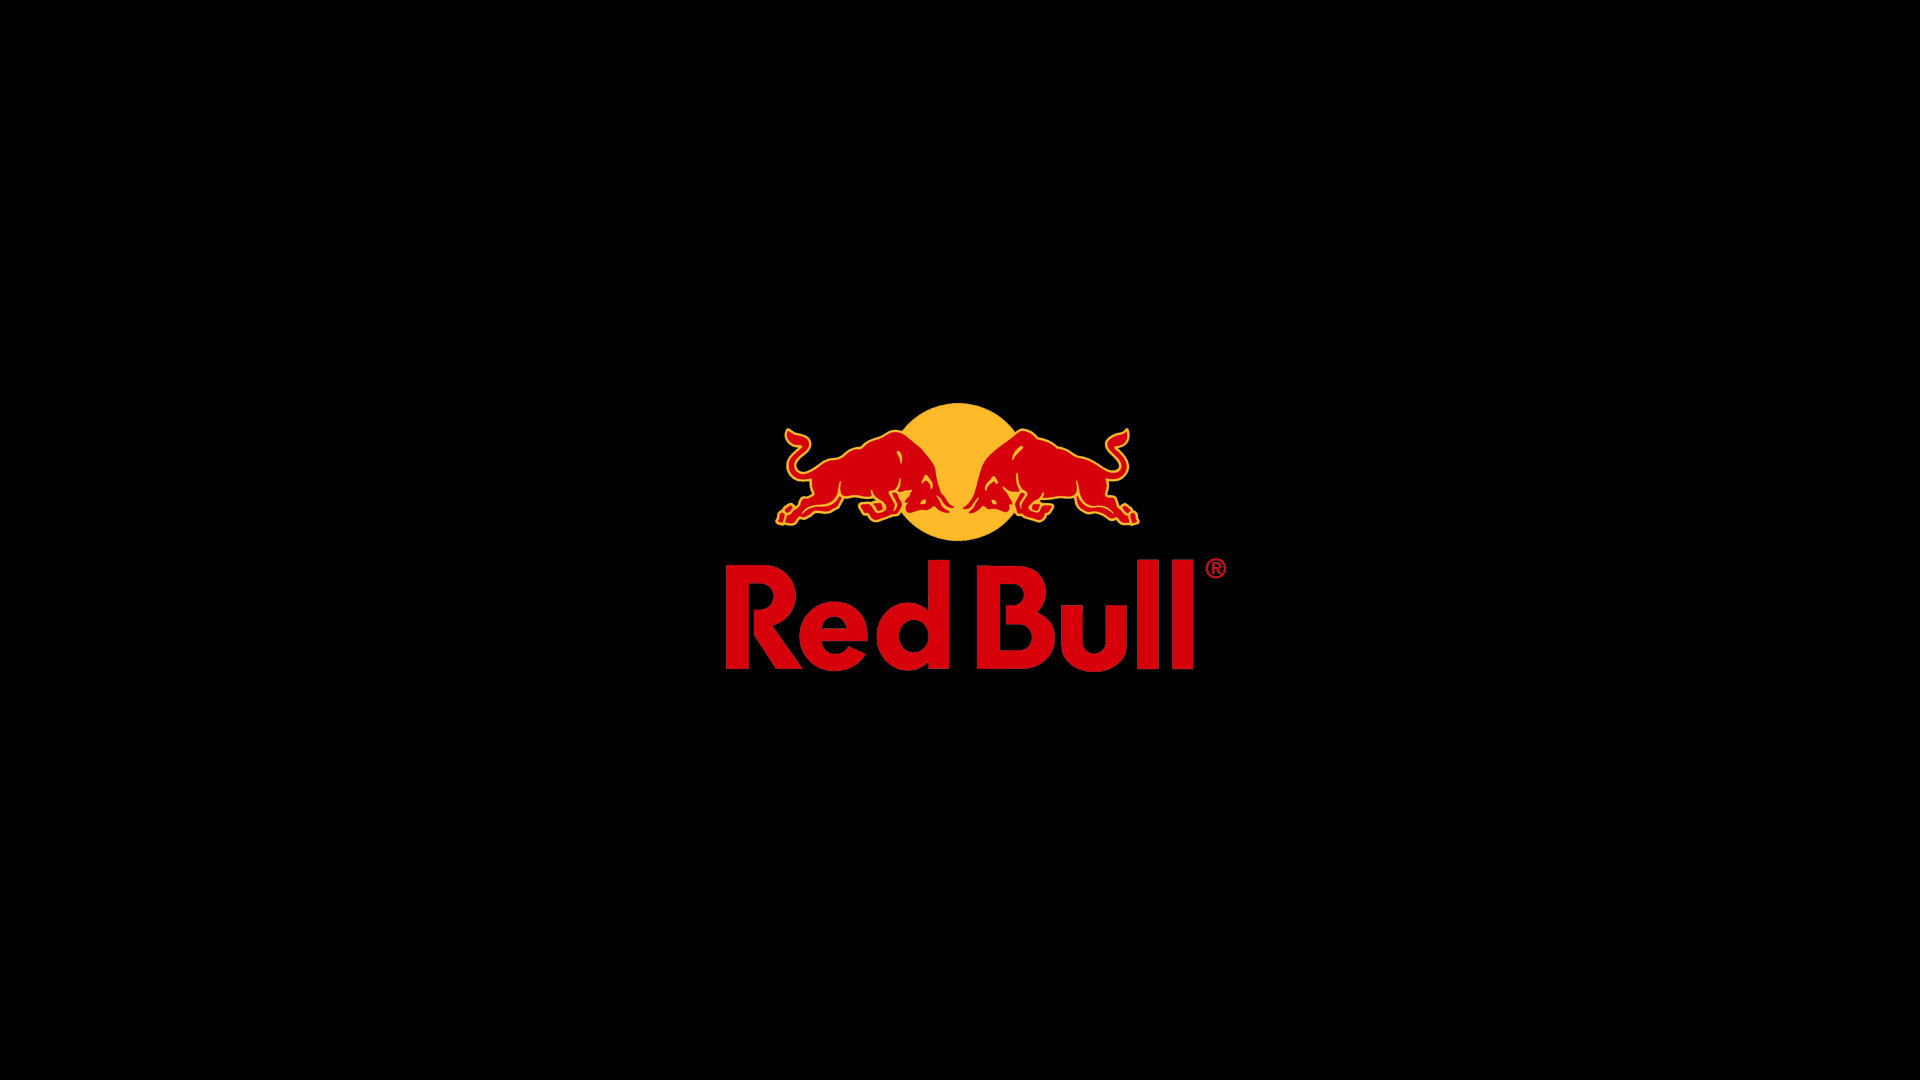 red bull wallpapers hd for desktop backgrounds